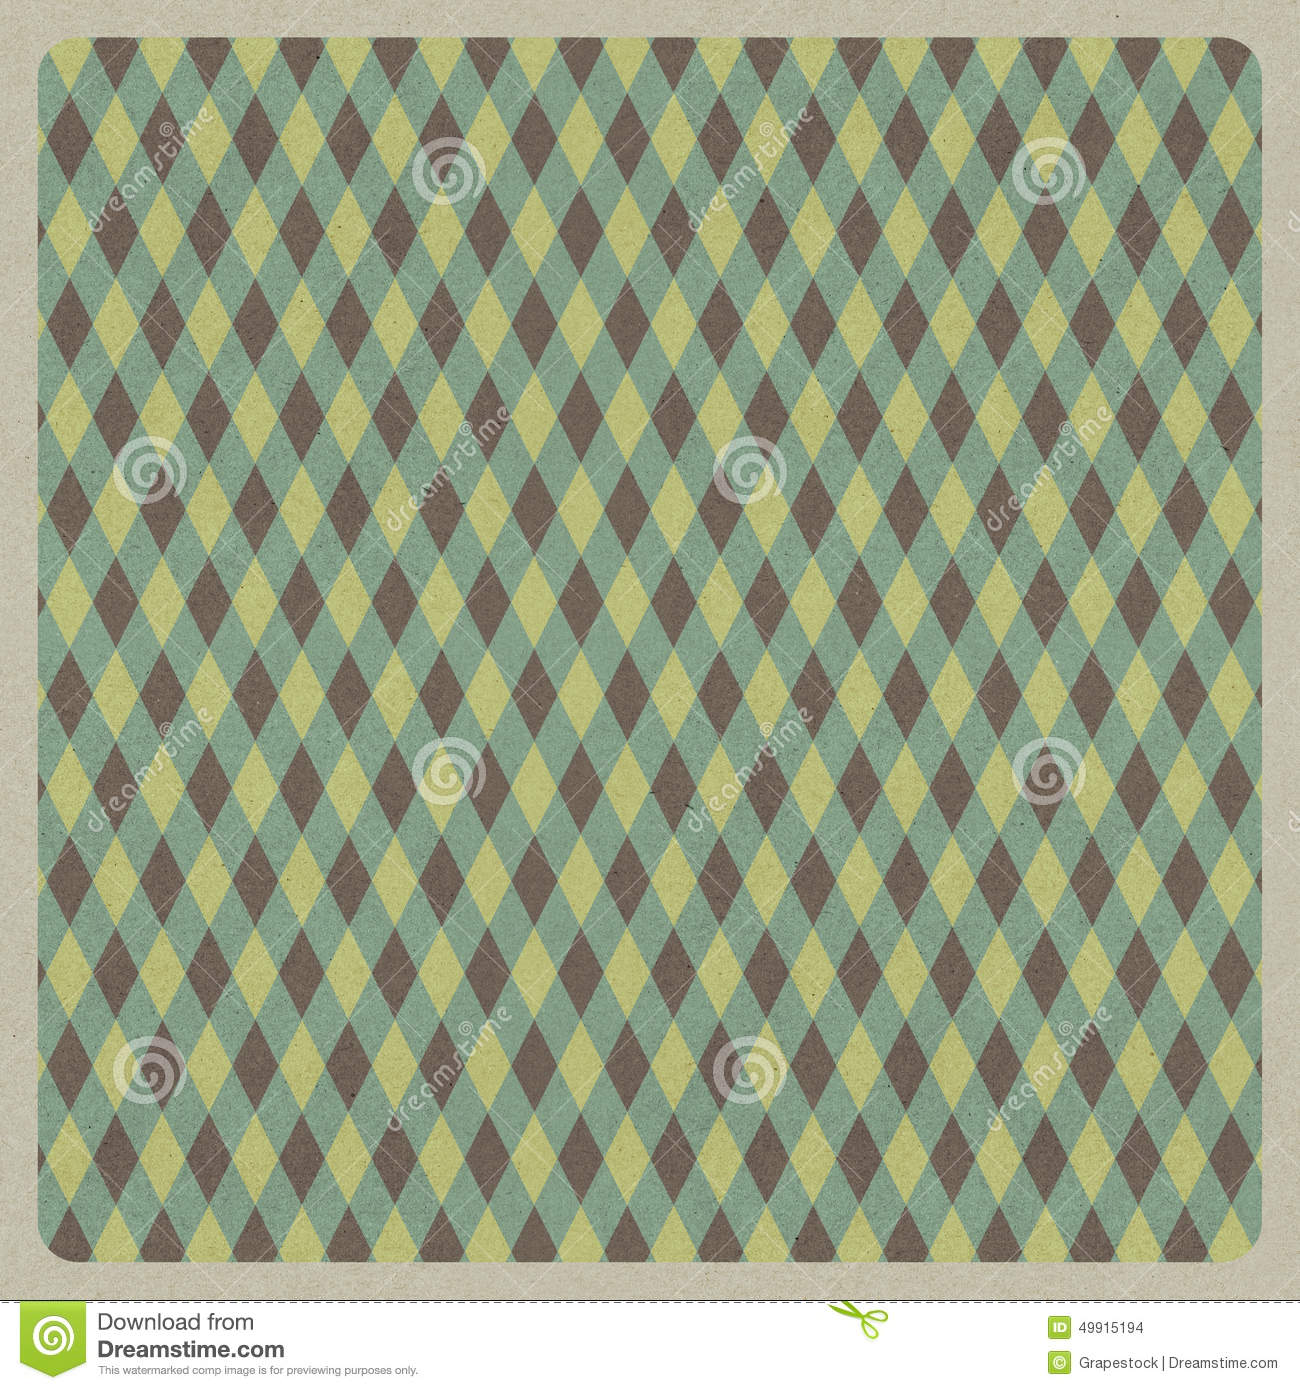 Abstract green retro pattern background, recycled paper craft